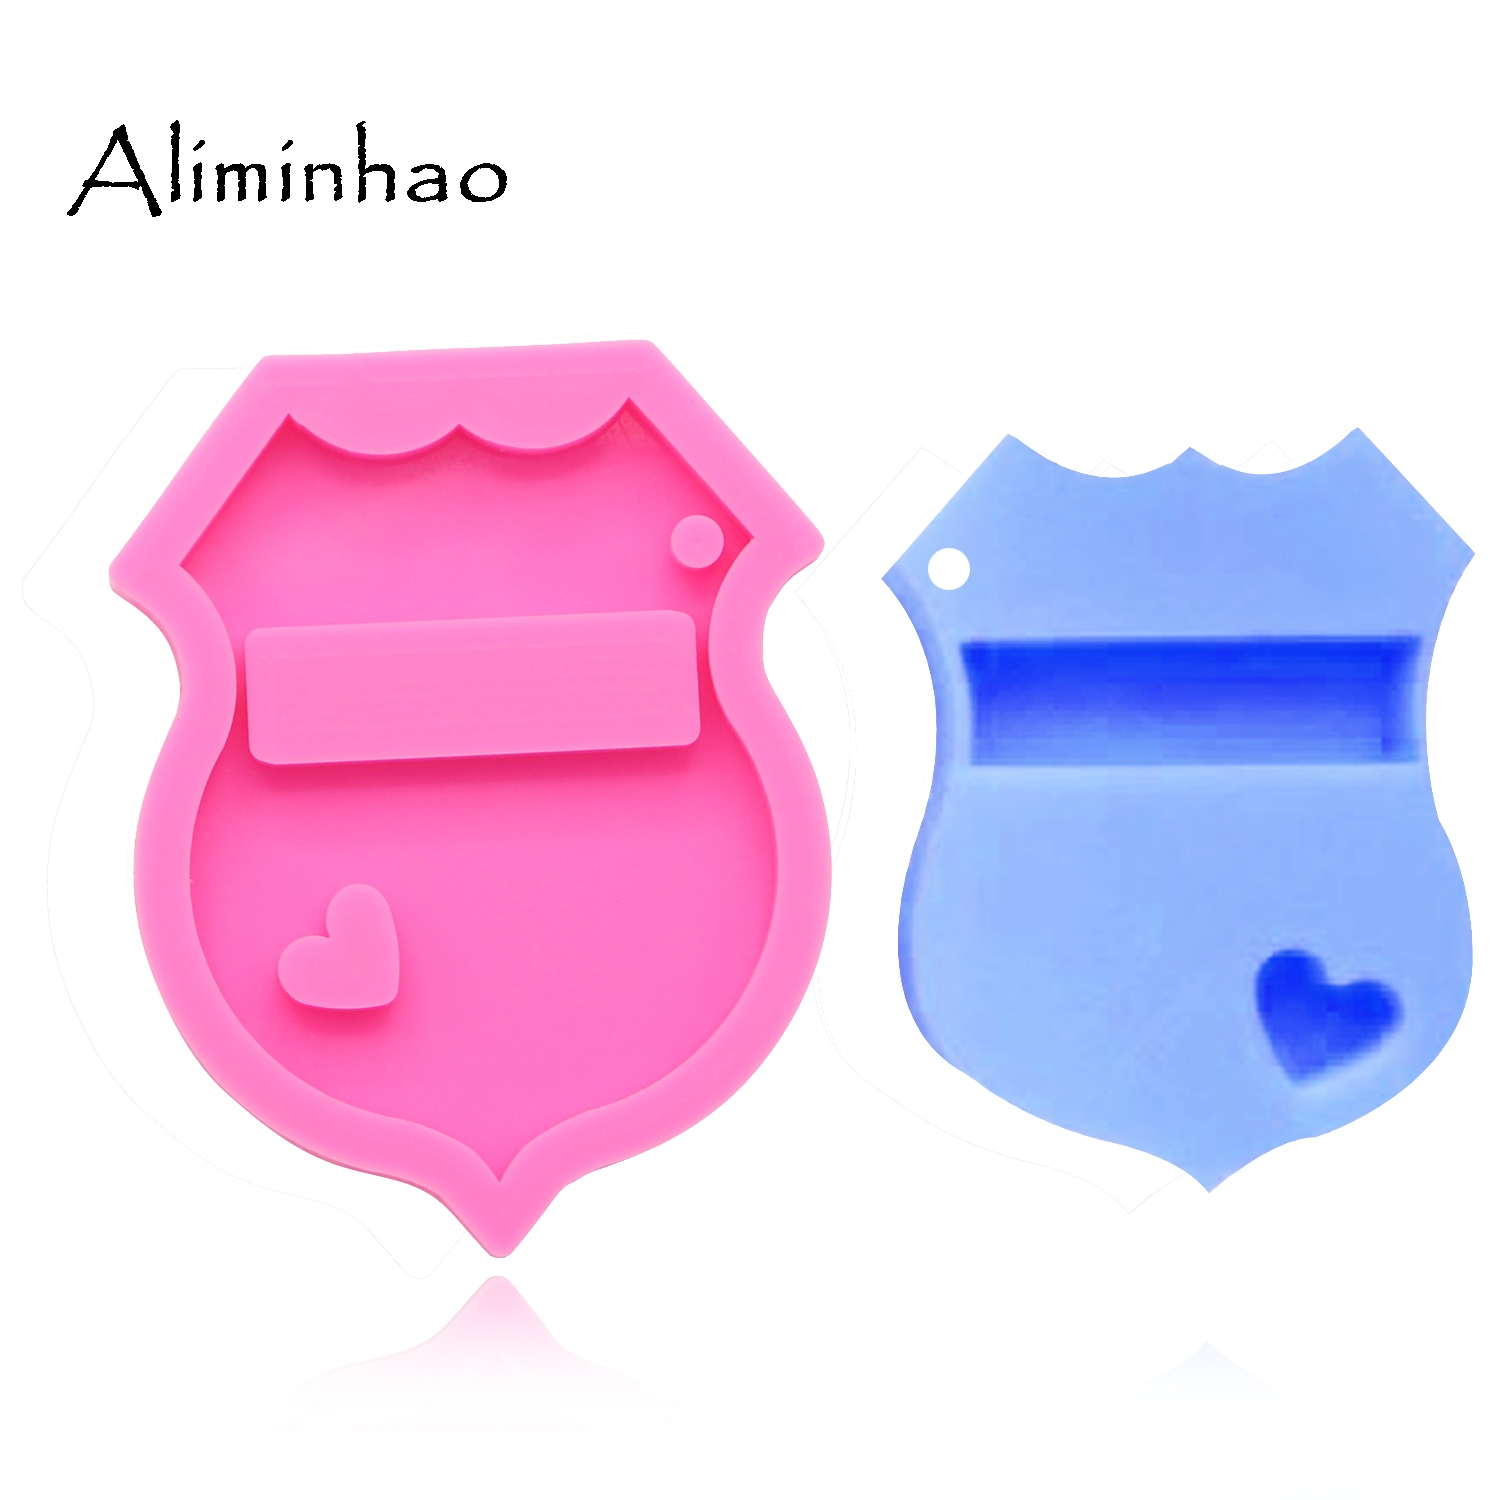 DY0083 Shiny Police Badge Keychains Mold Key Chain Pendant Clay DIY Jewelry Making Epoxy Silicone Resin Mold